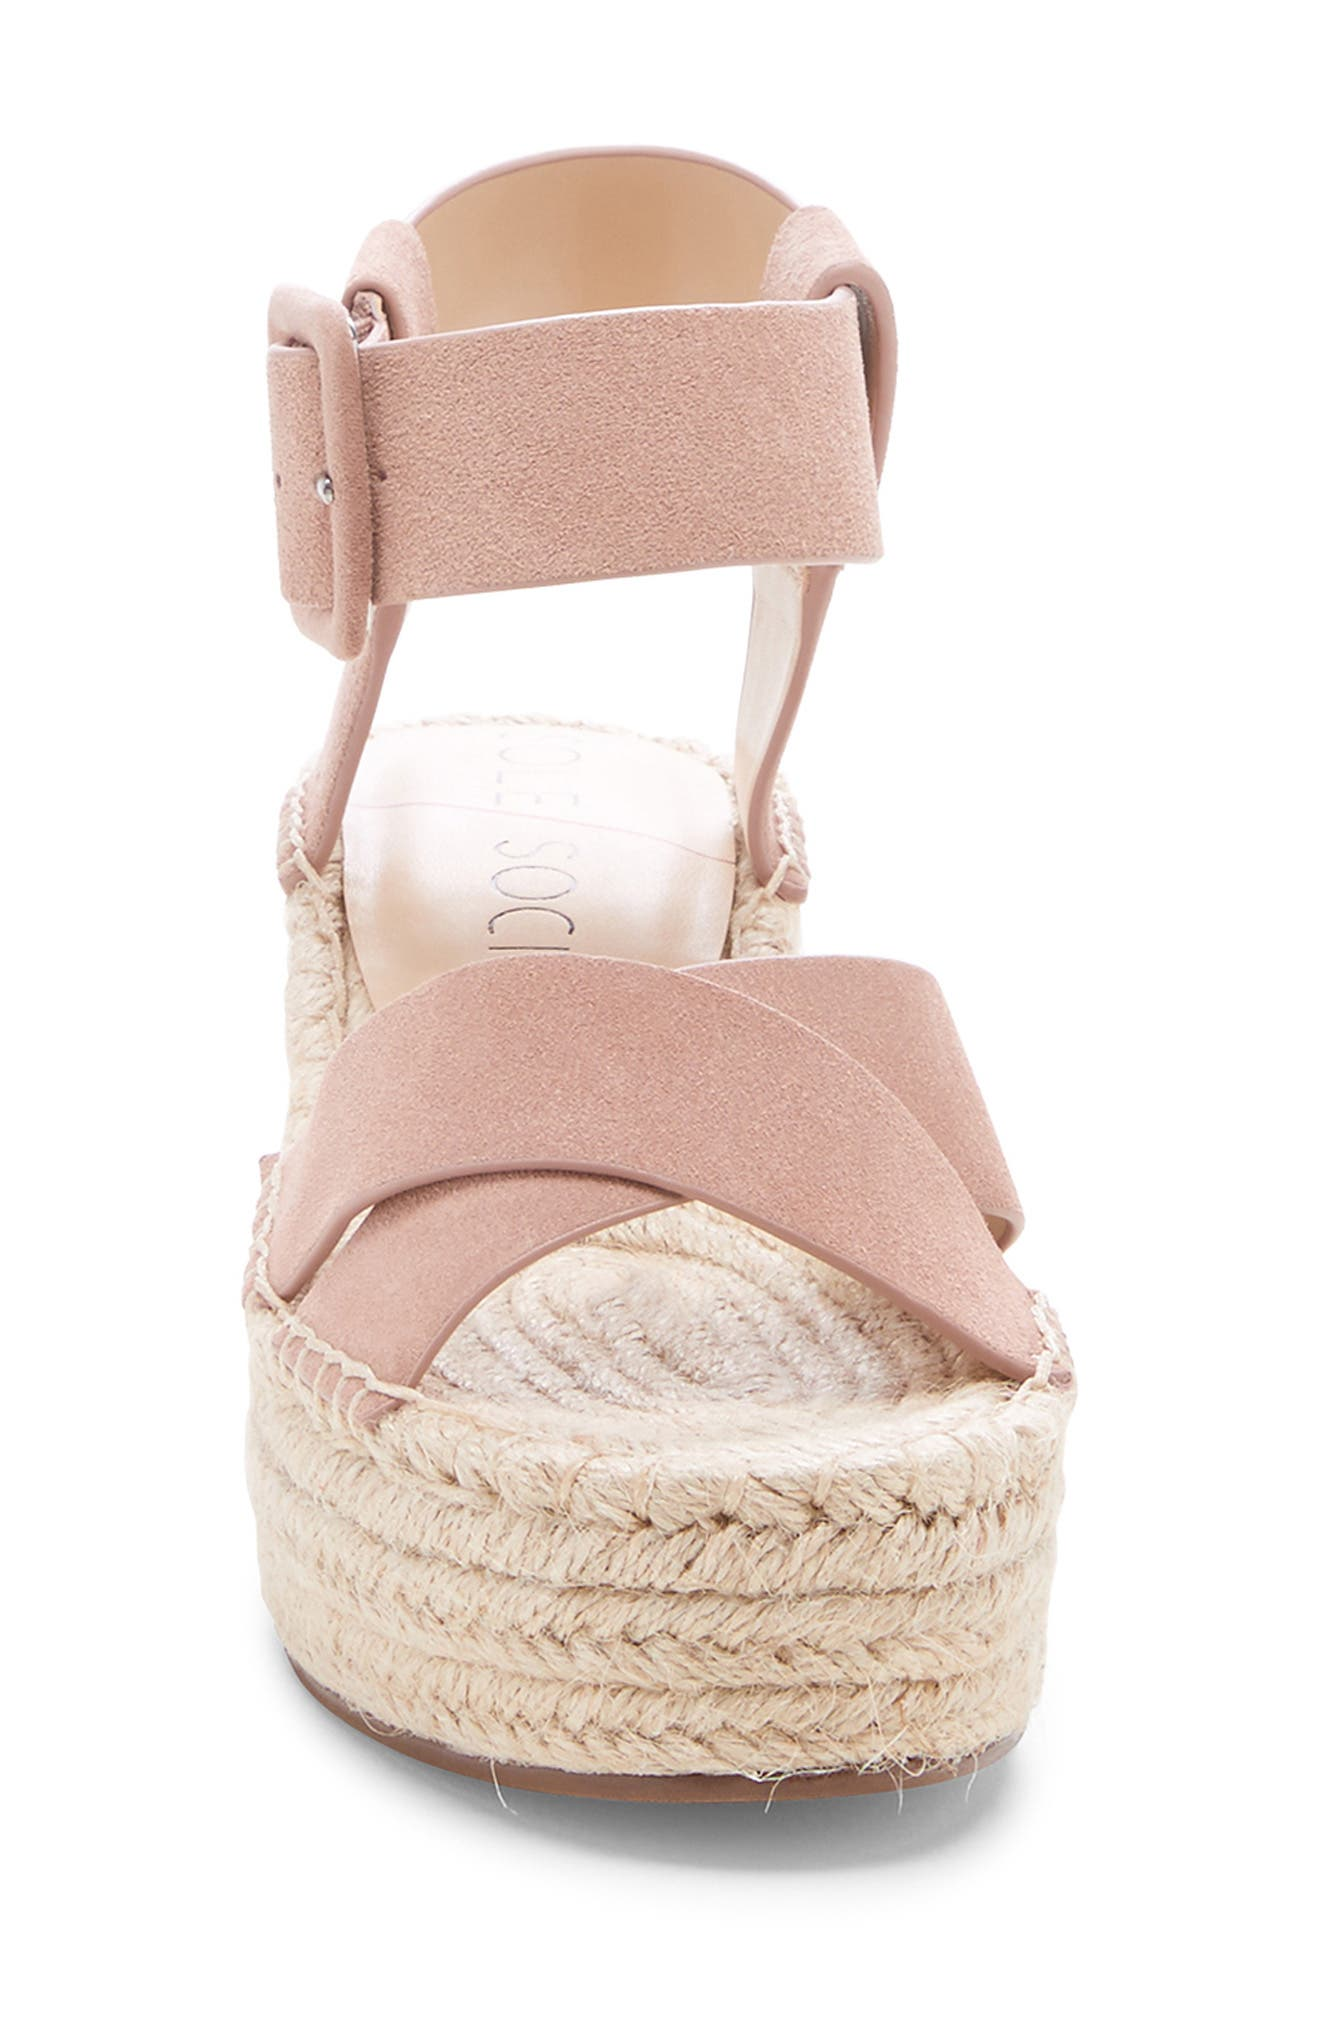 SOLE SOCIETY, Audrina Platform Espadrille Sandal, Alternate thumbnail 4, color, DUSTY ROSE SUEDE